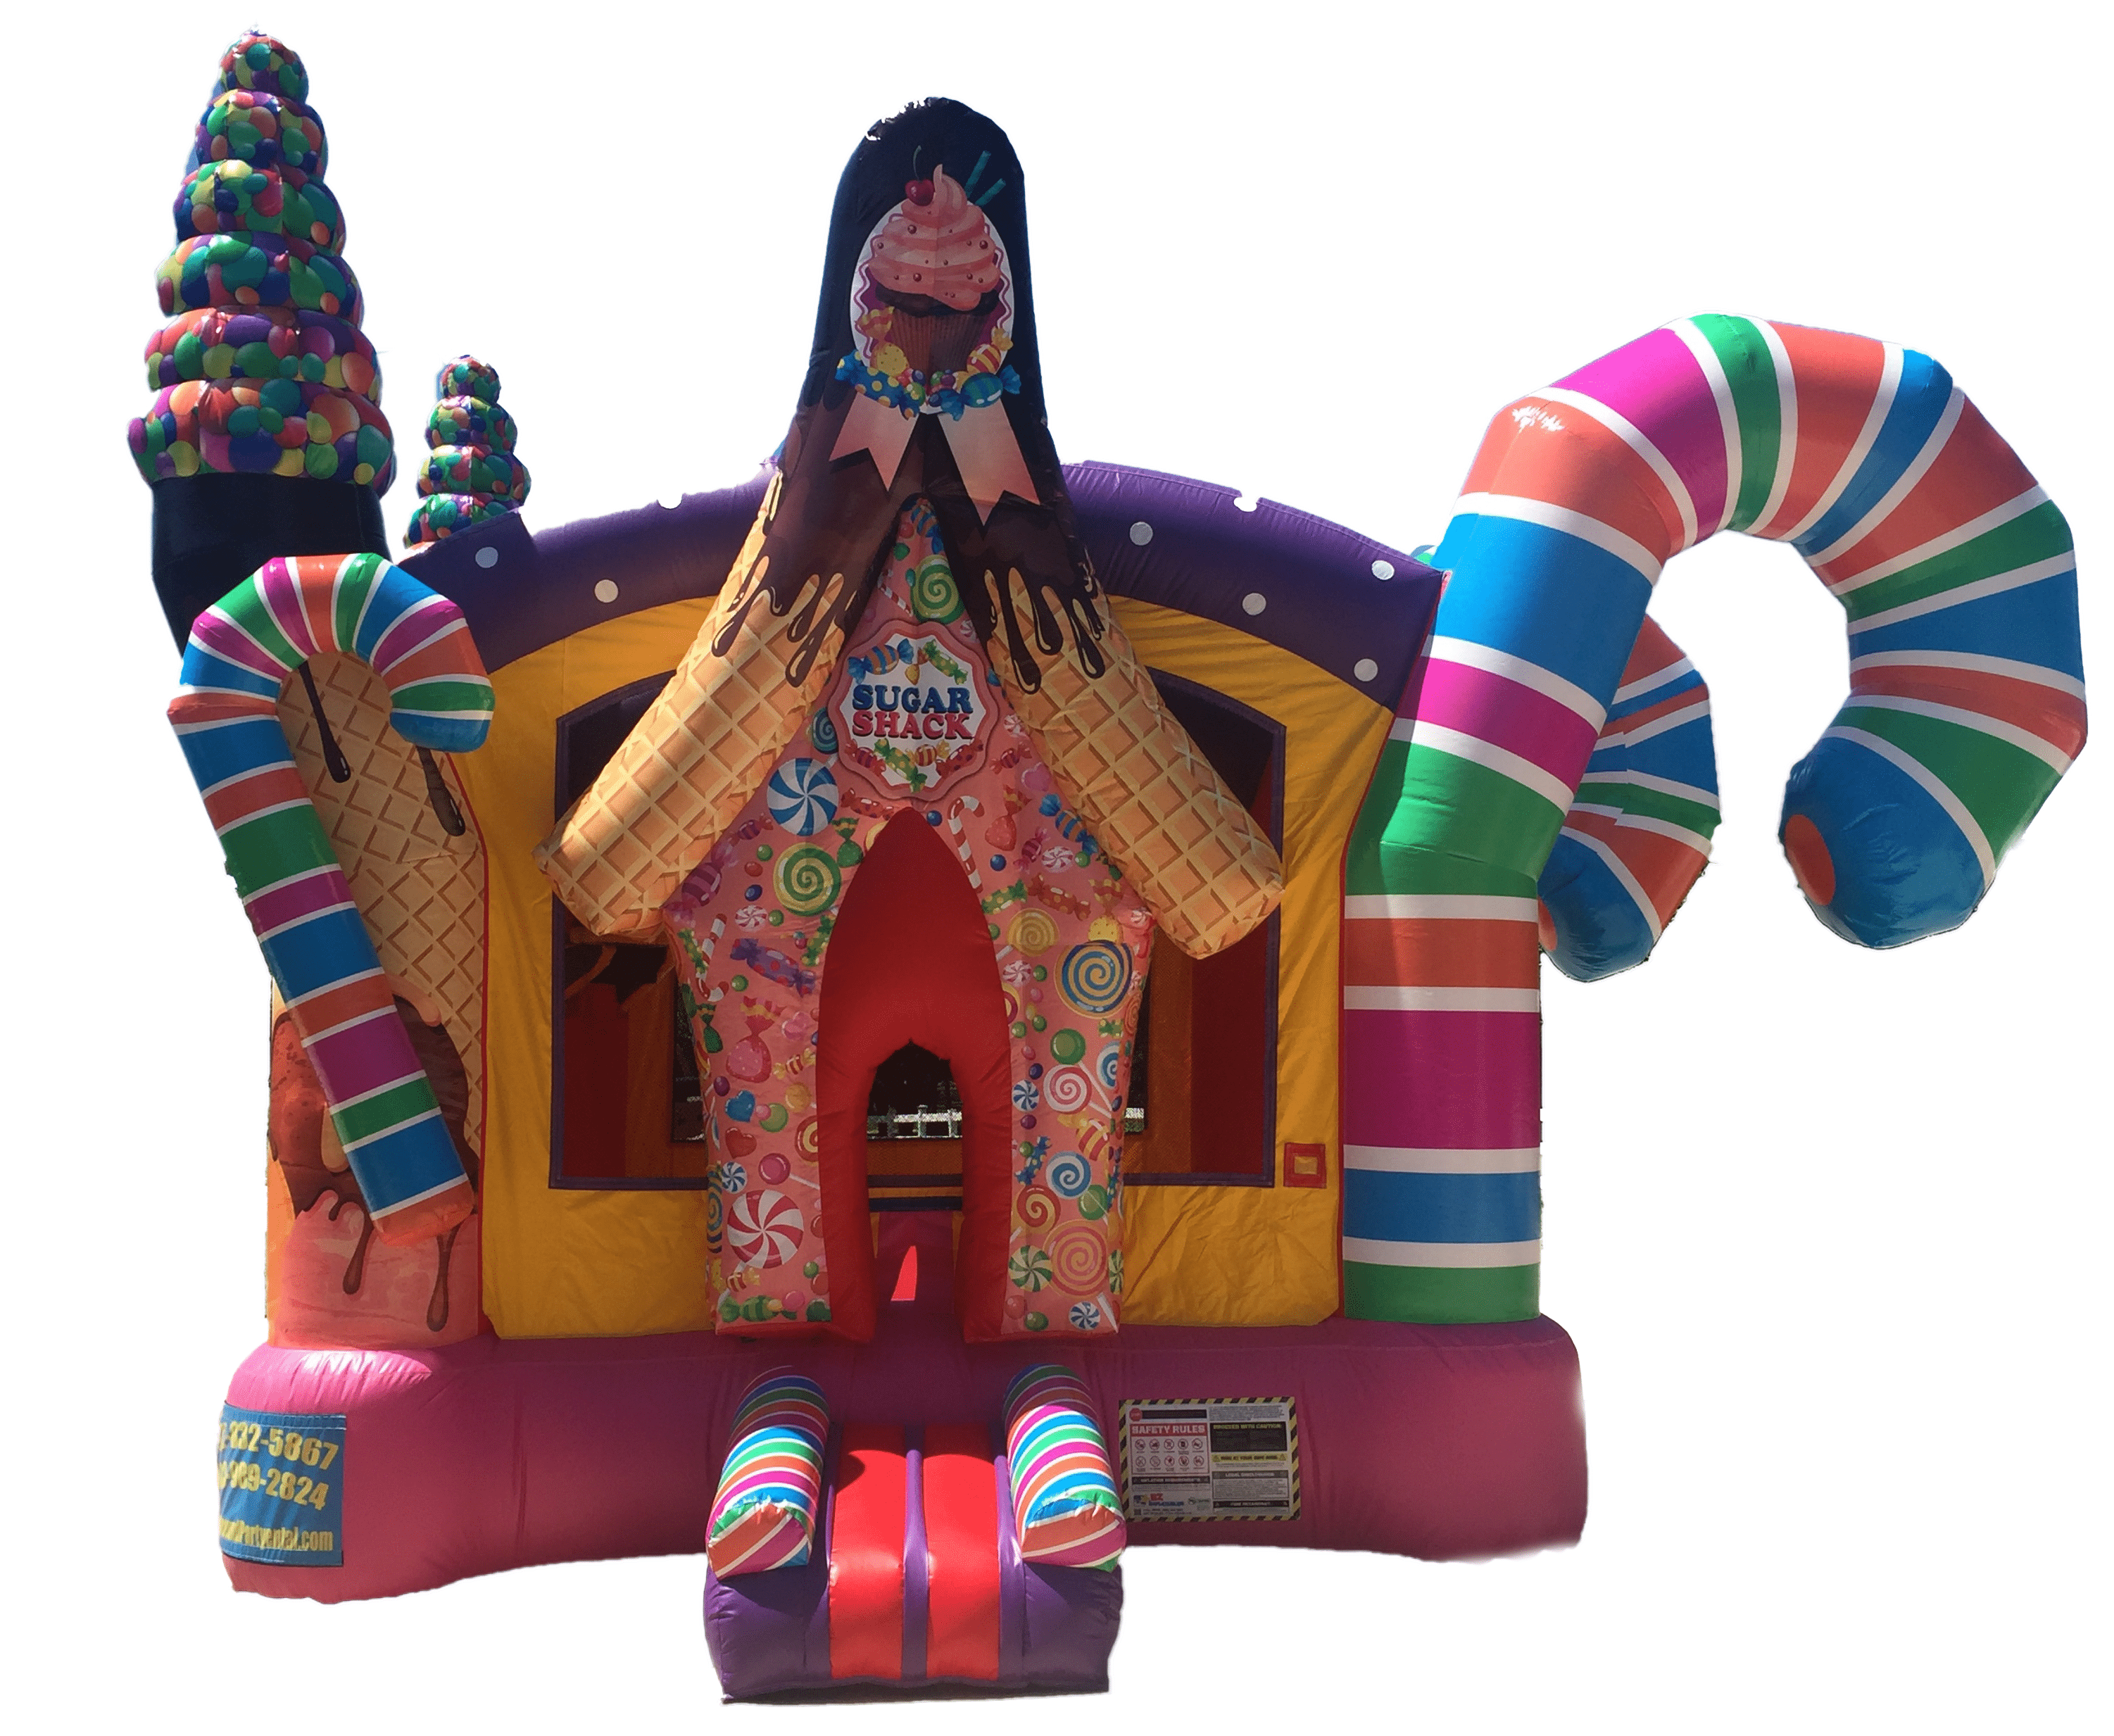 Sugar Shack Inflatable Bounce House Rentals Jumpers